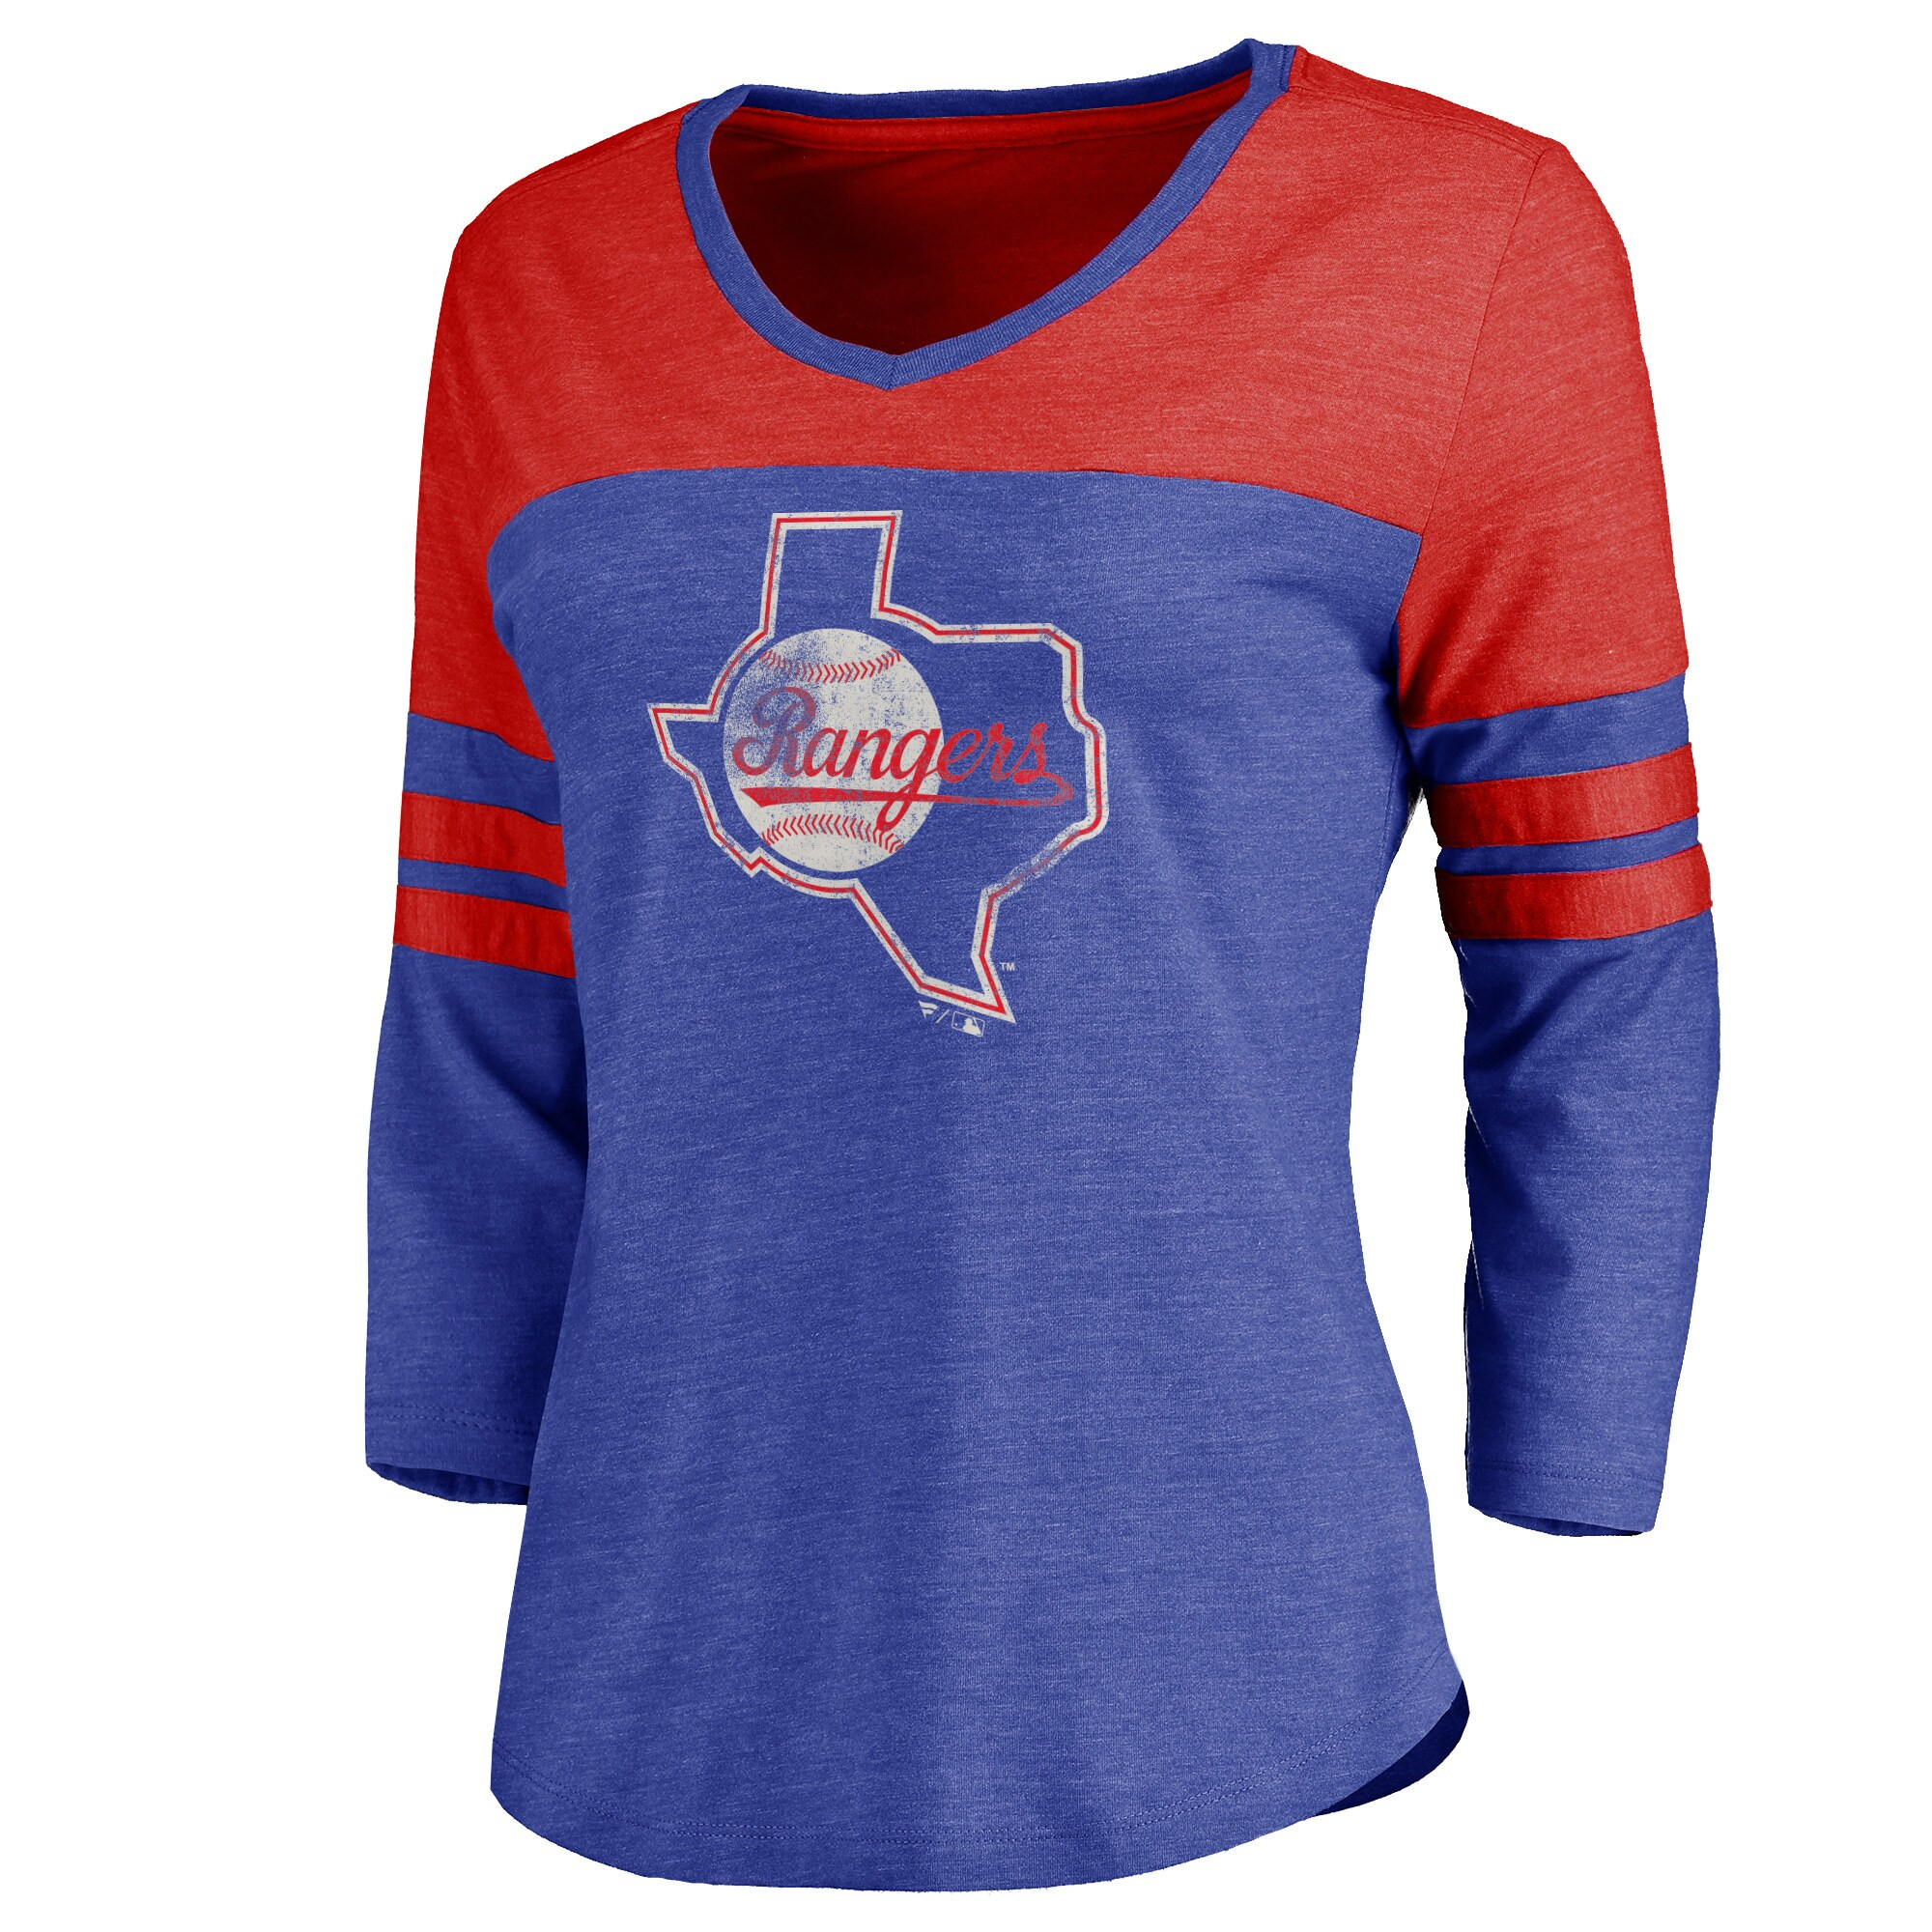 Texas Rangers Women's Cooperstown Two Tone Three-Quarter Sleeve Tri-Blend T-Shirt - Royal/Red